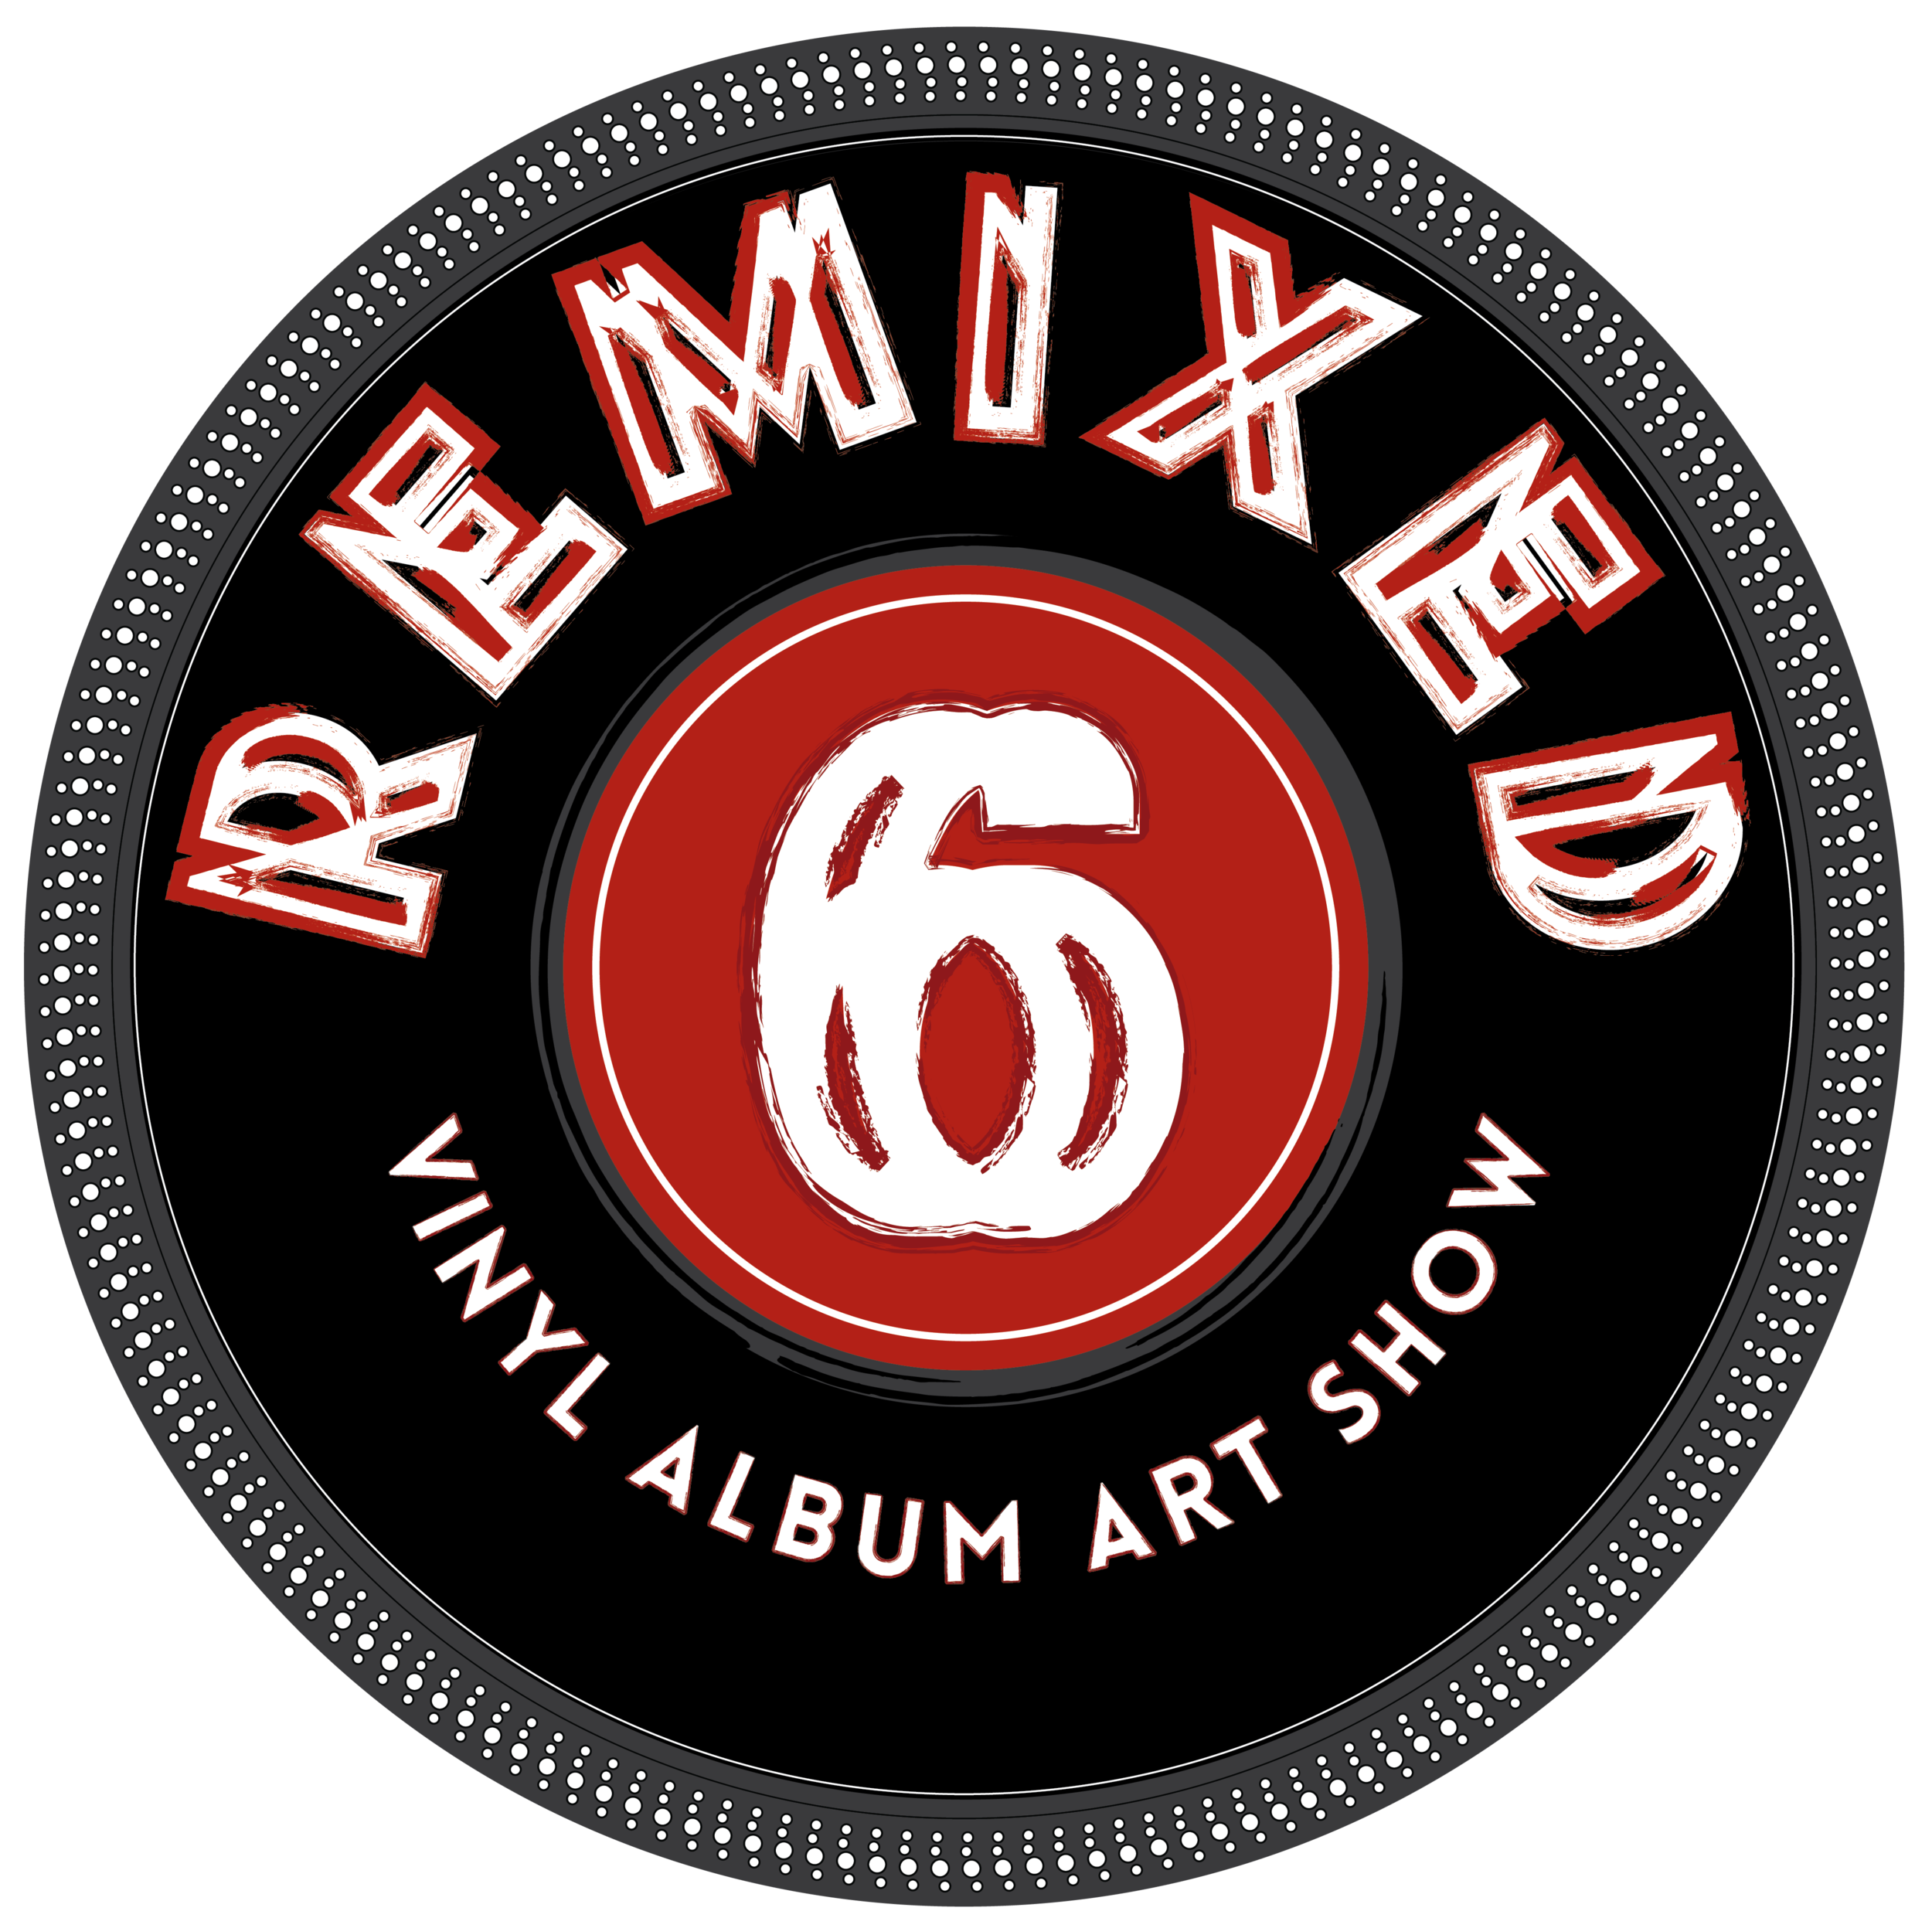 remixed6-02.png